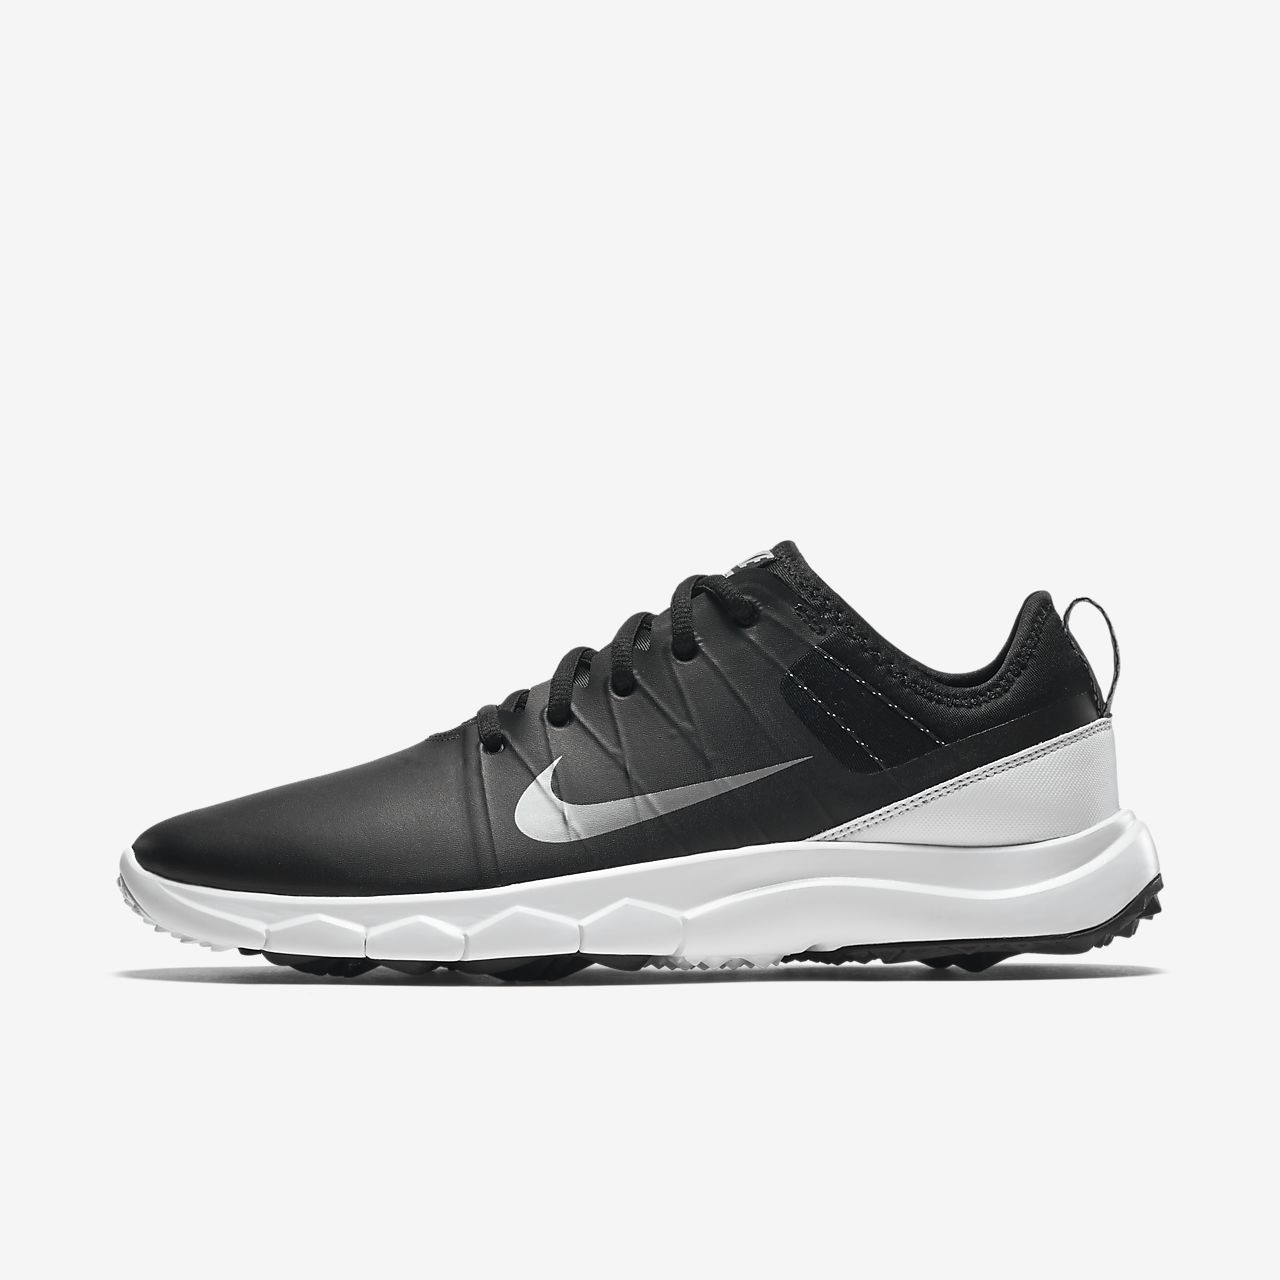 Nike FI Impact 2 Women's Golf Shoe